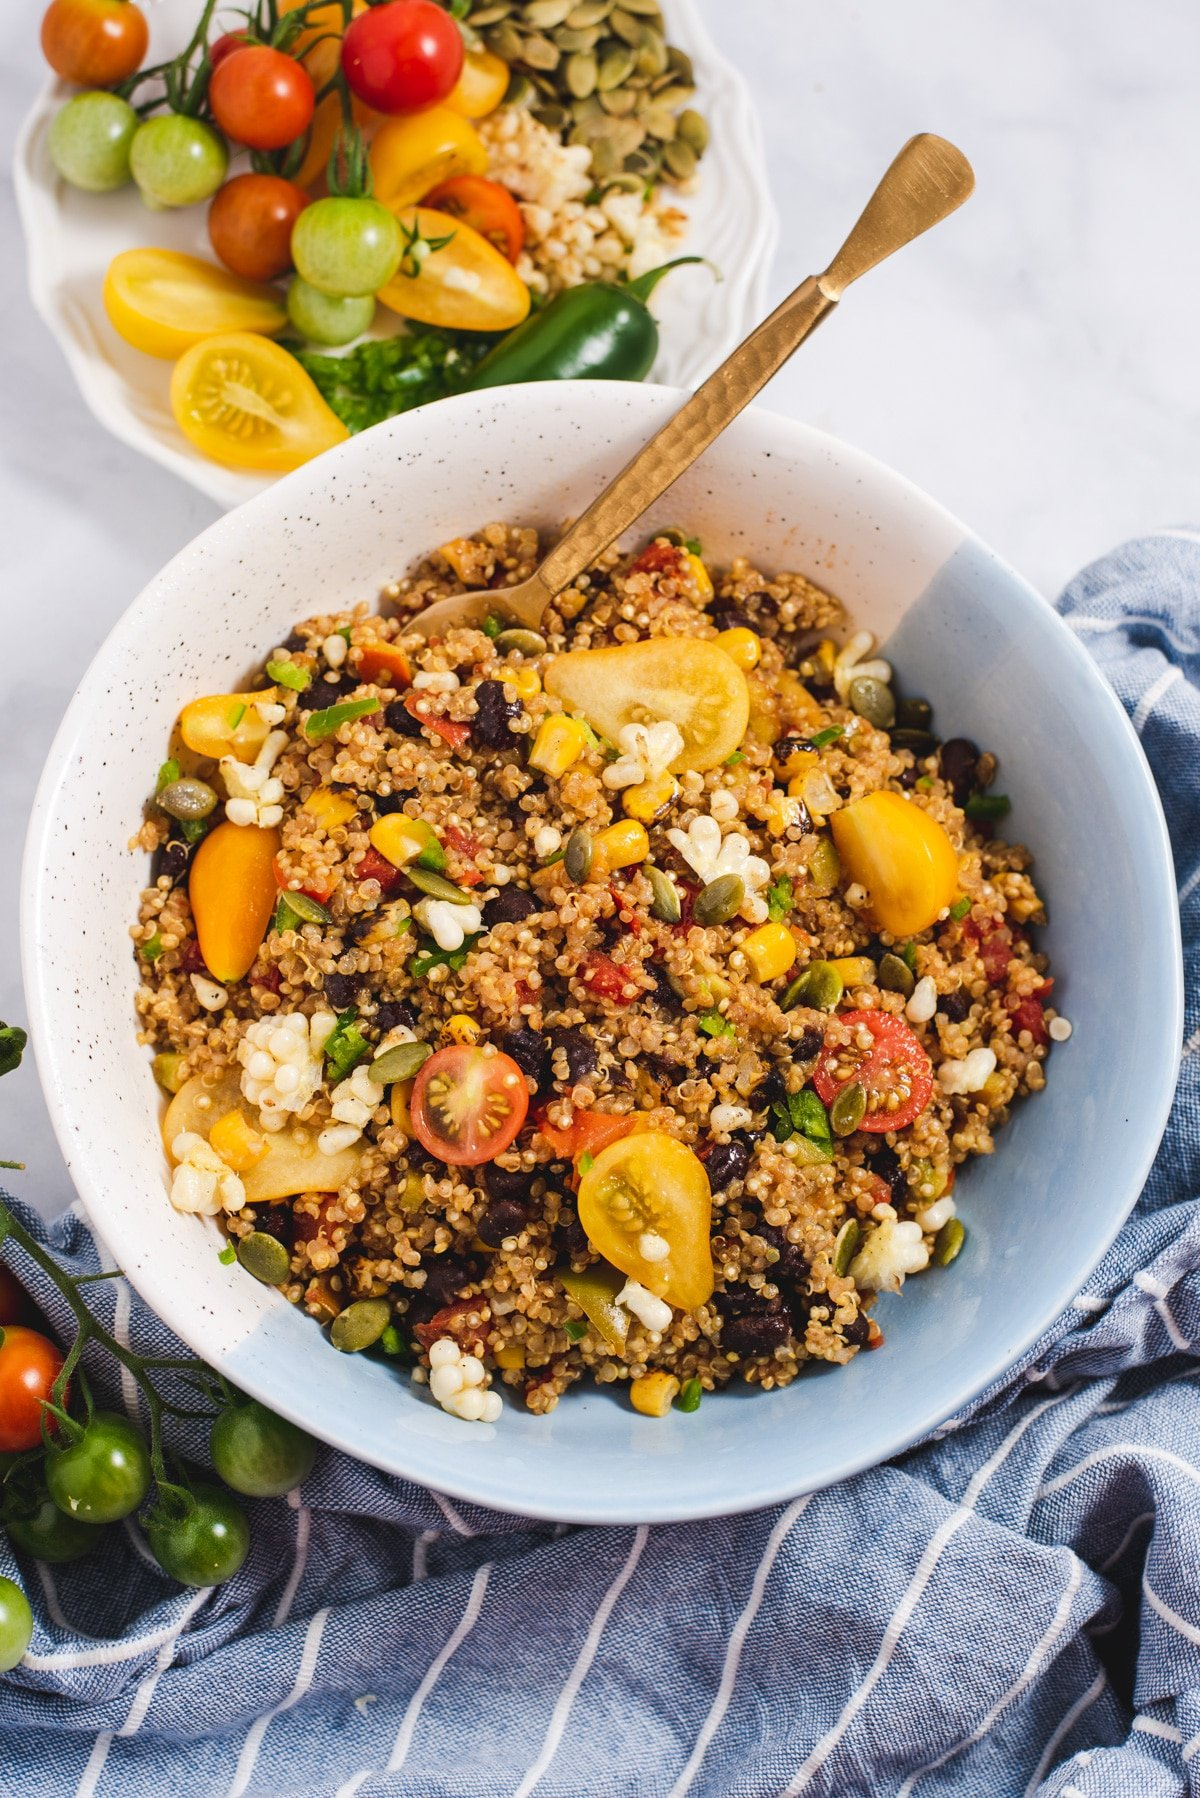 Quinoa salad in a white and blue bowl